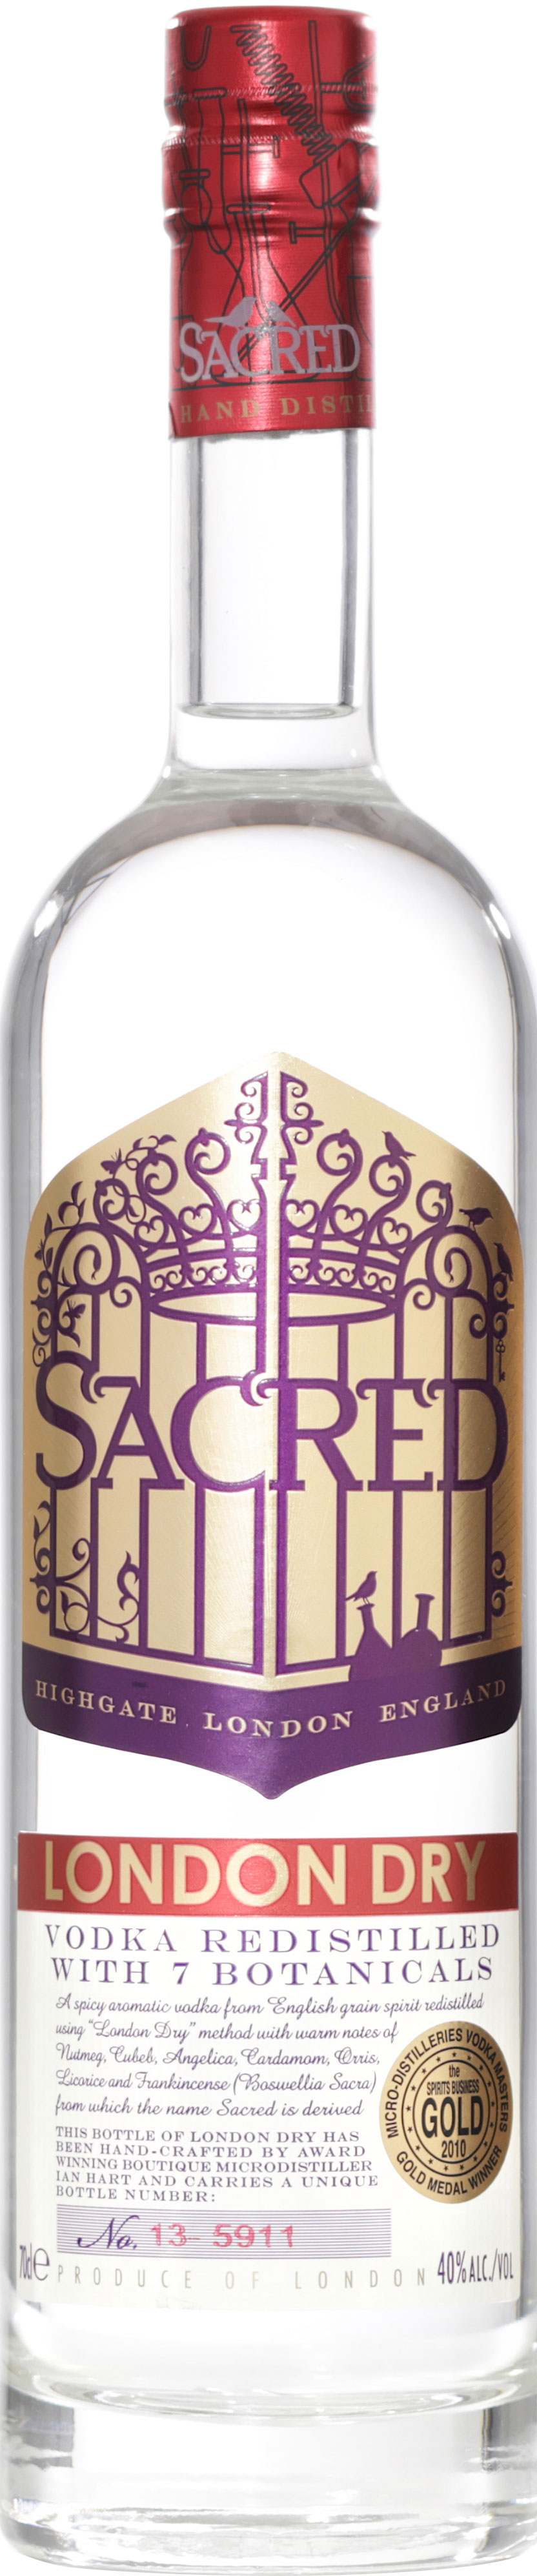 Sacred - London Dry Vodka 70cl Bottle